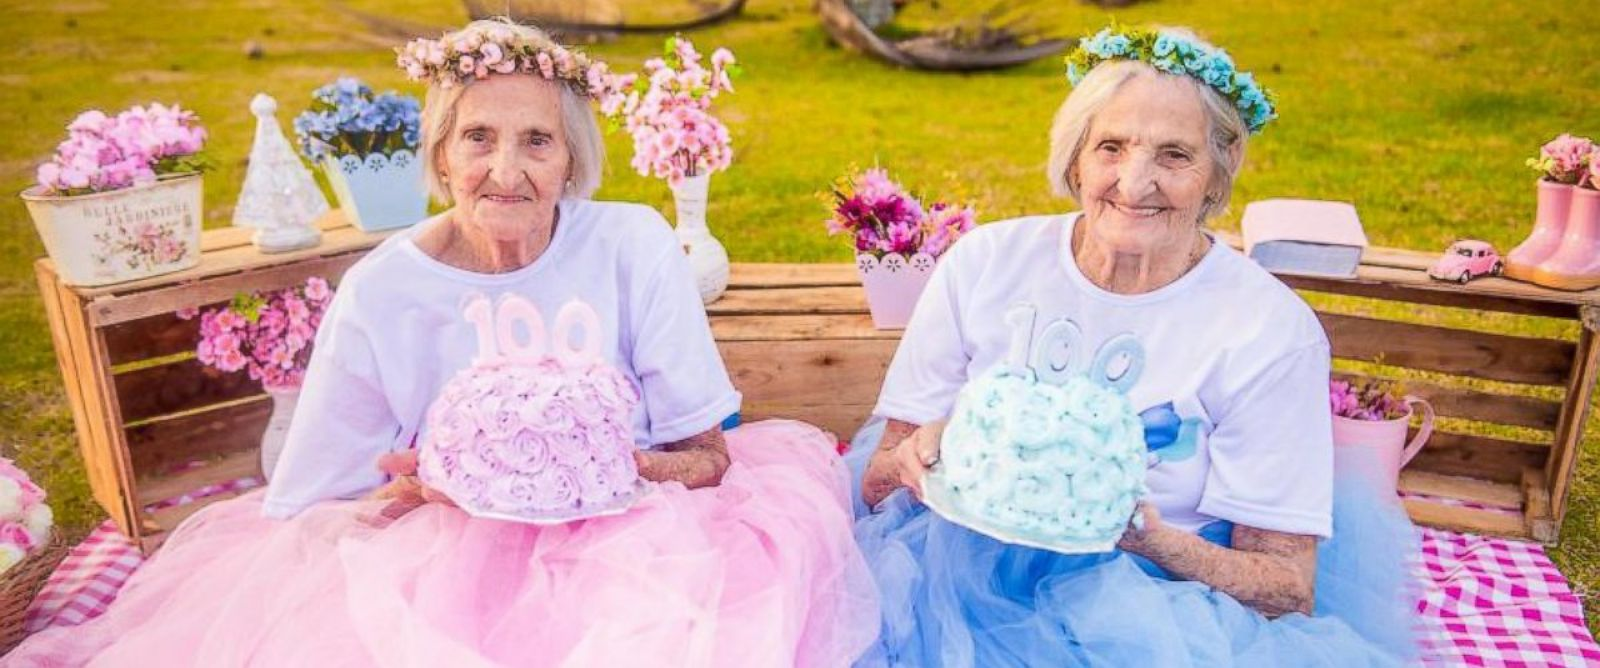 Twins Celebrate 100th Birthday With This Amazing Photoshoot